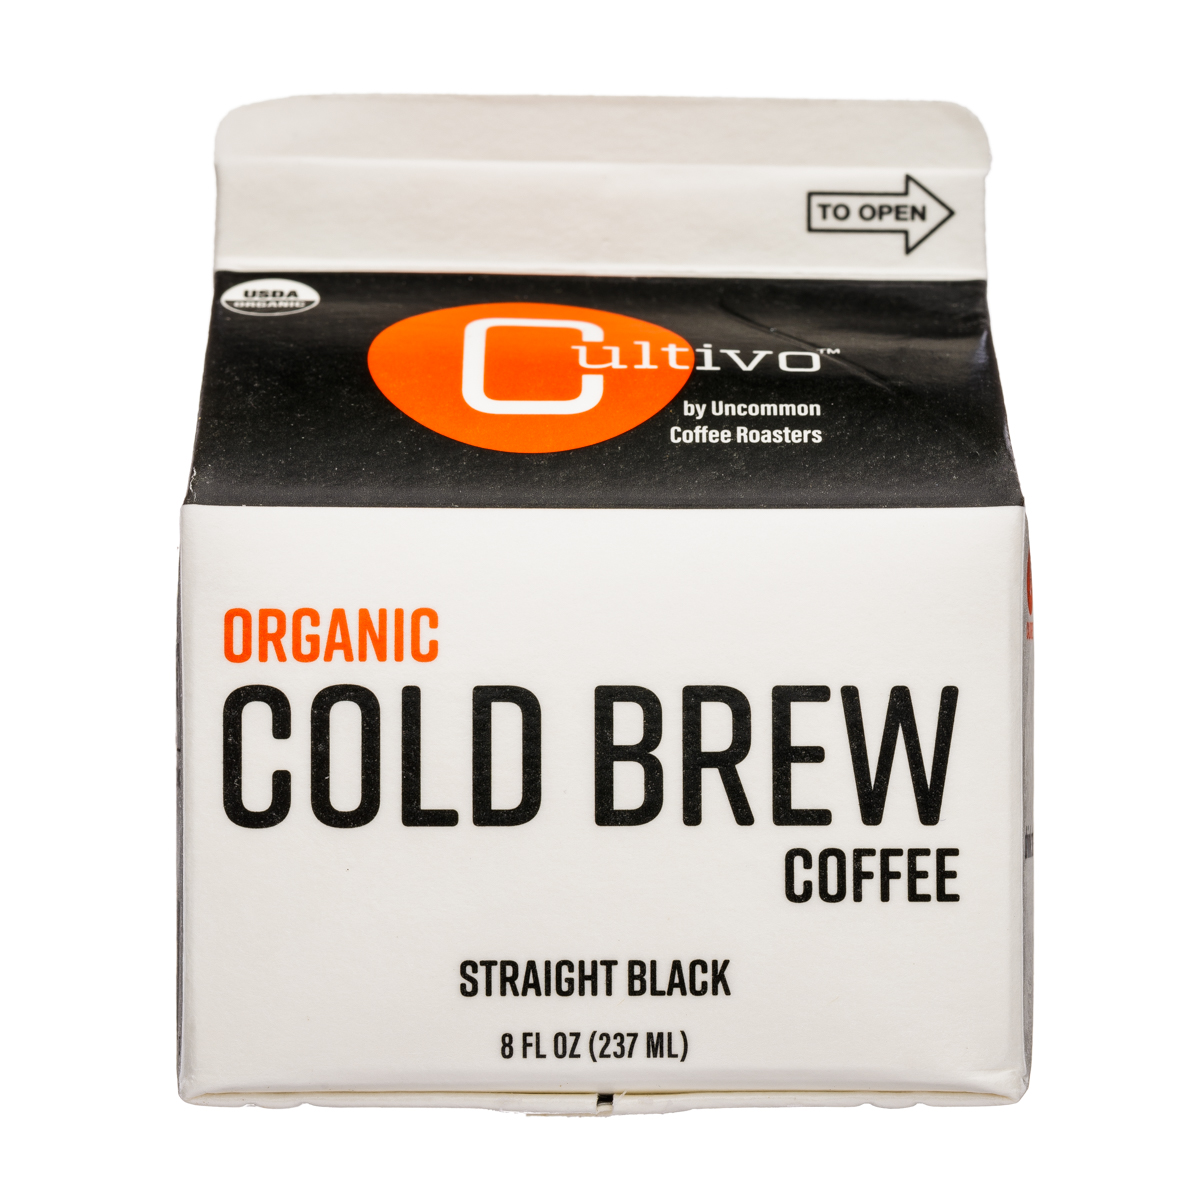 Organic Cold Brew Coffee - Straight Black